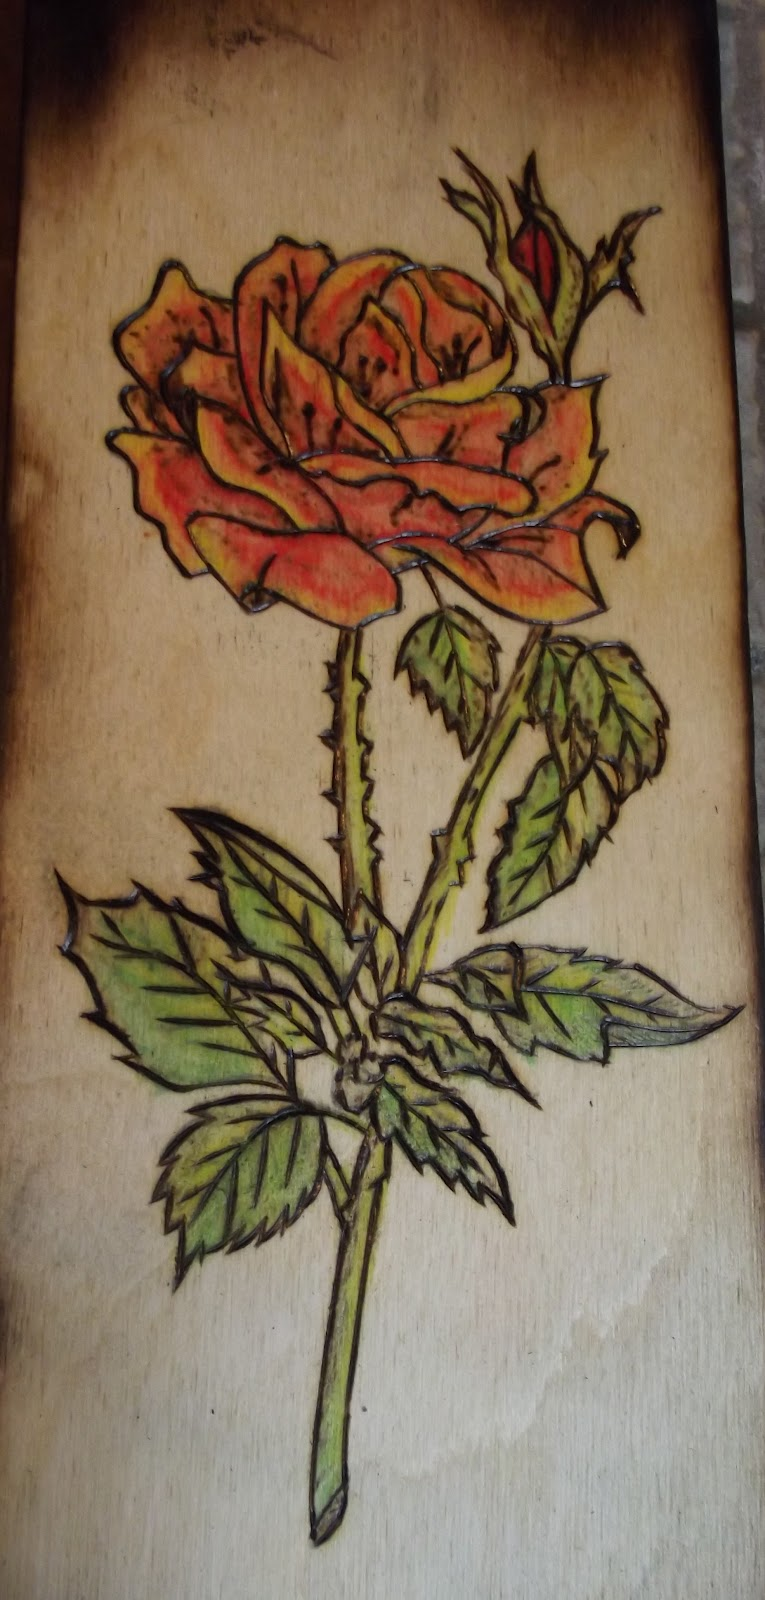 Beginner Wood Burning Patterns Class today - woodburning